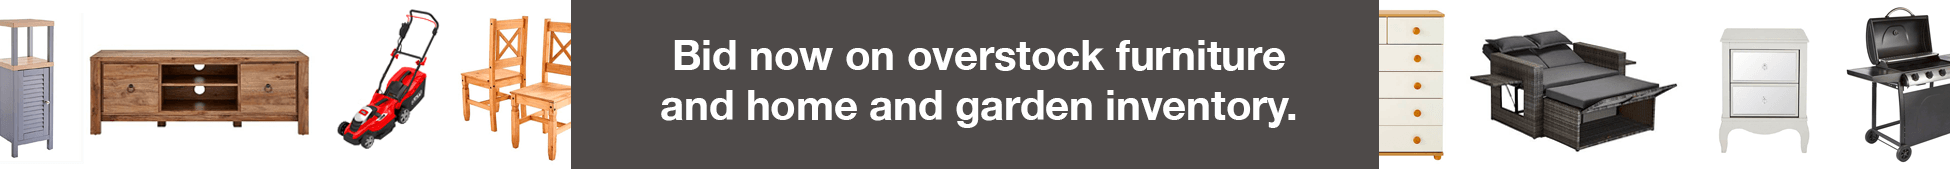 Bid Now on overstock furniture and home and garden inventory.